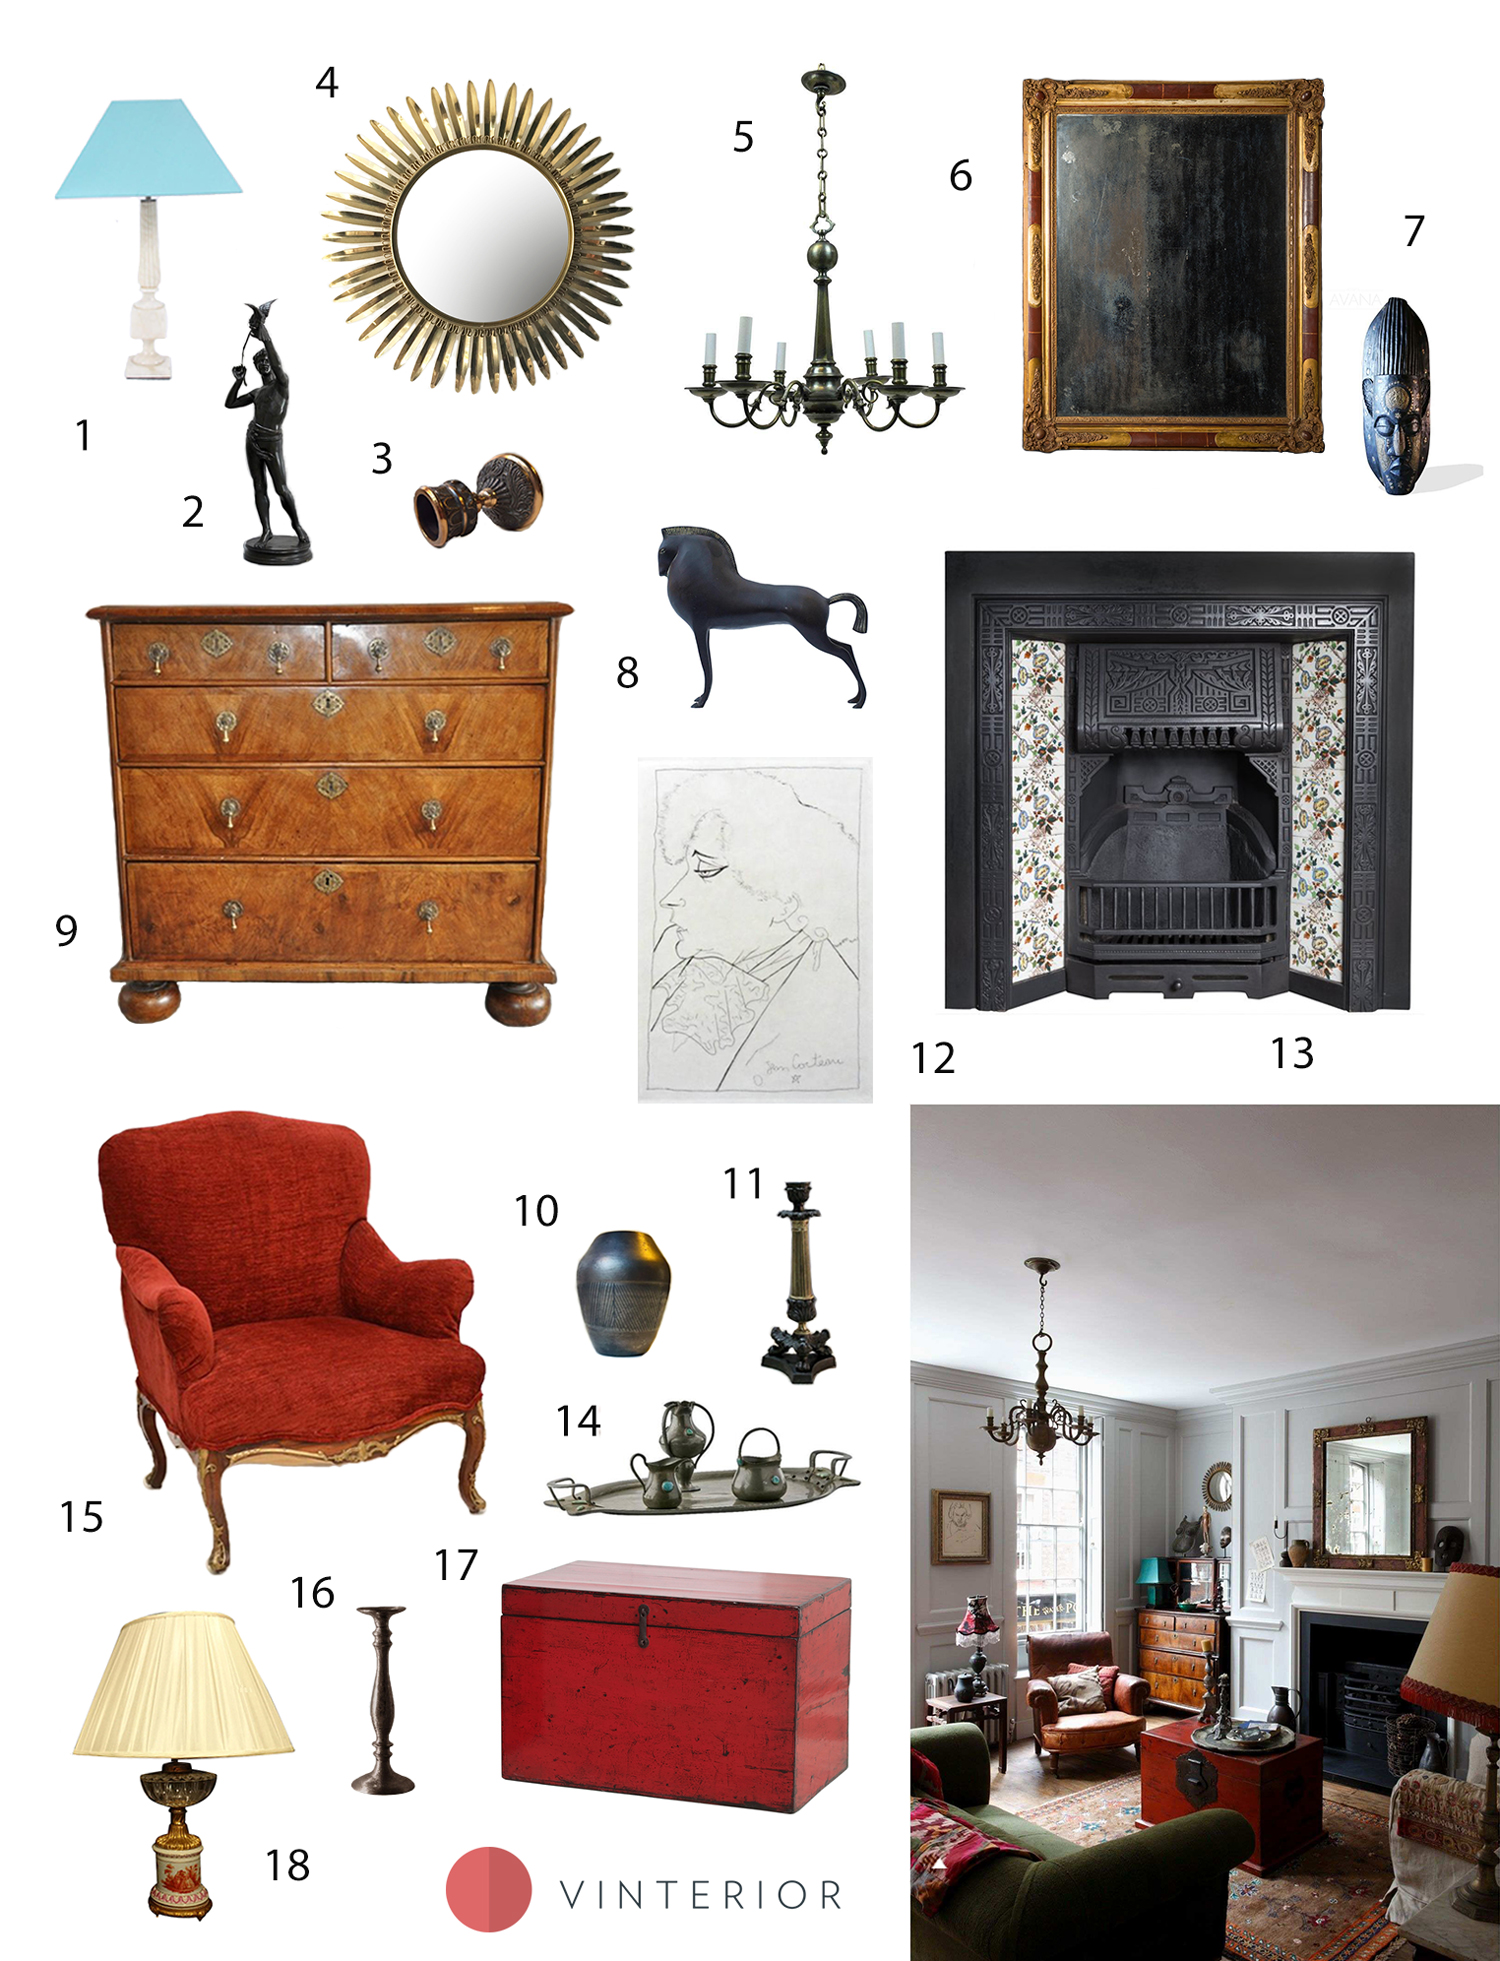 Get the look of this timeless living room with a global touch - Vinterior